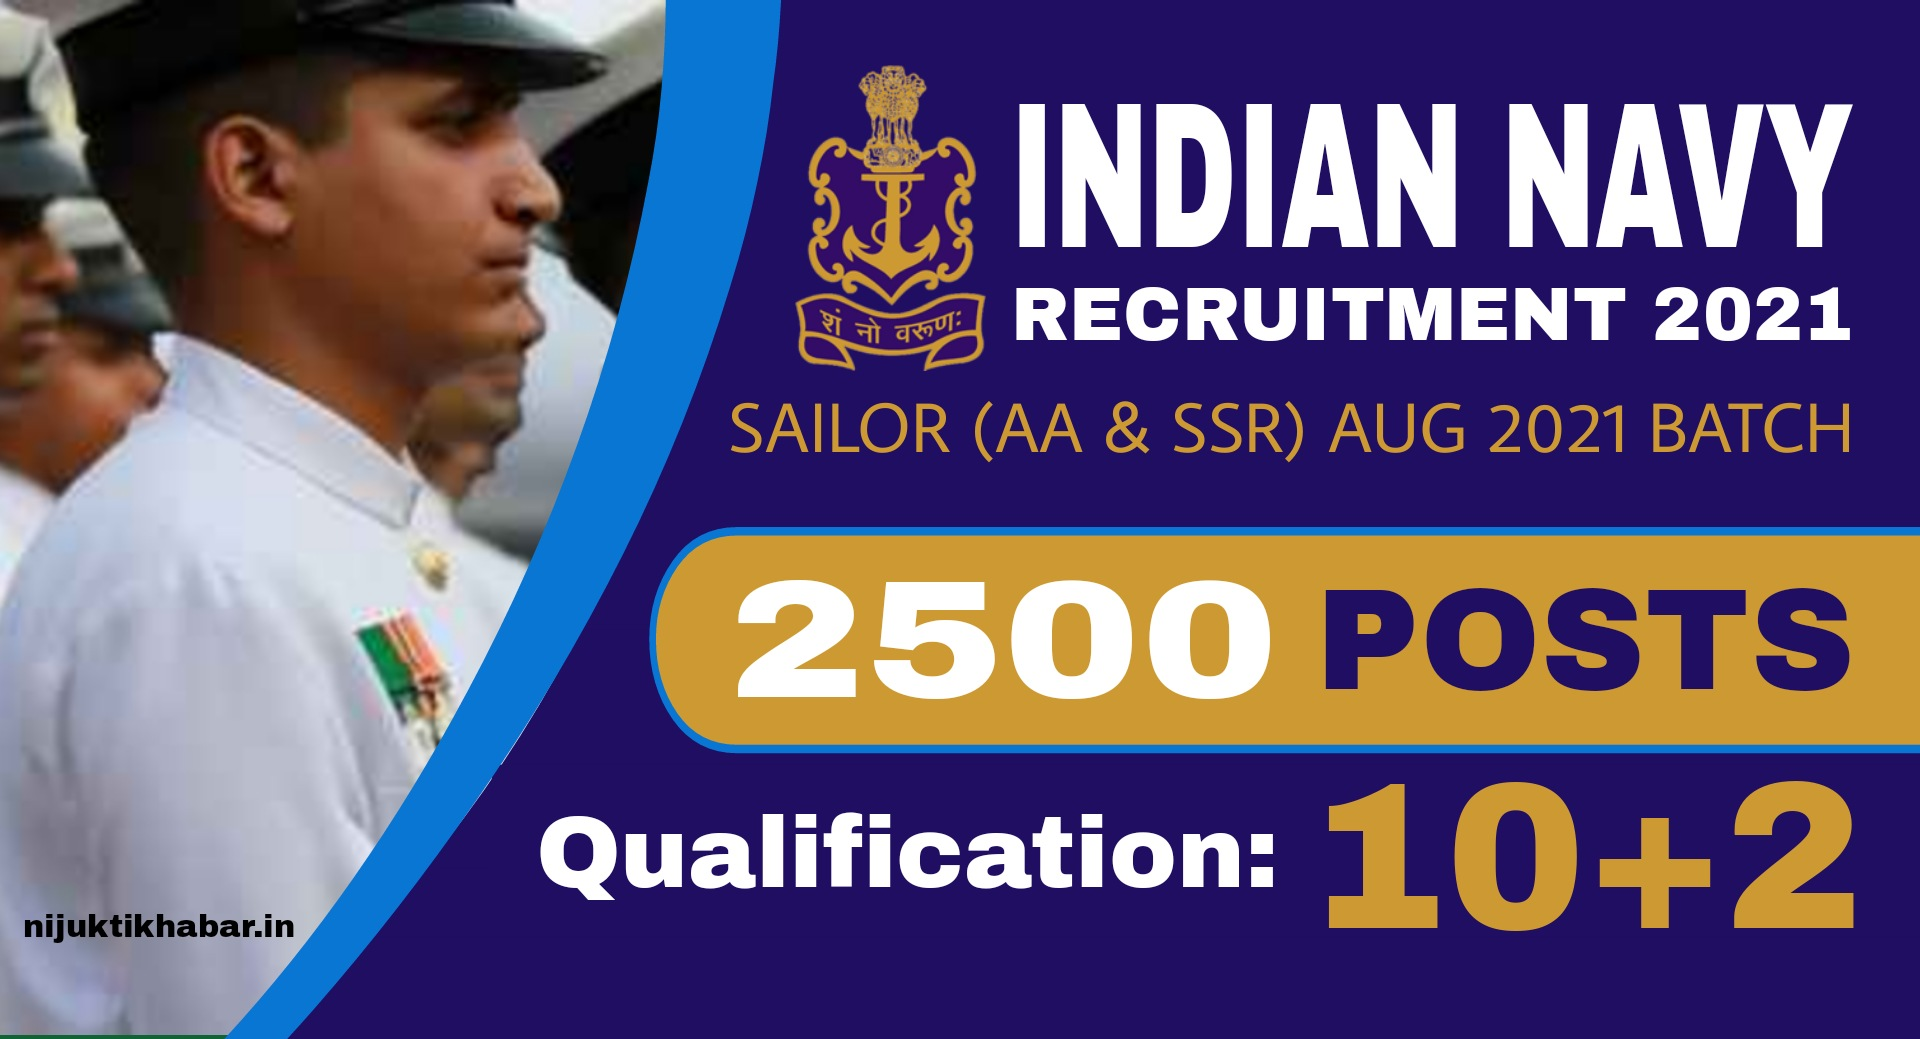 Indian Navy Sailor Recruitment 2021 – Apply Online for 2500 Posts